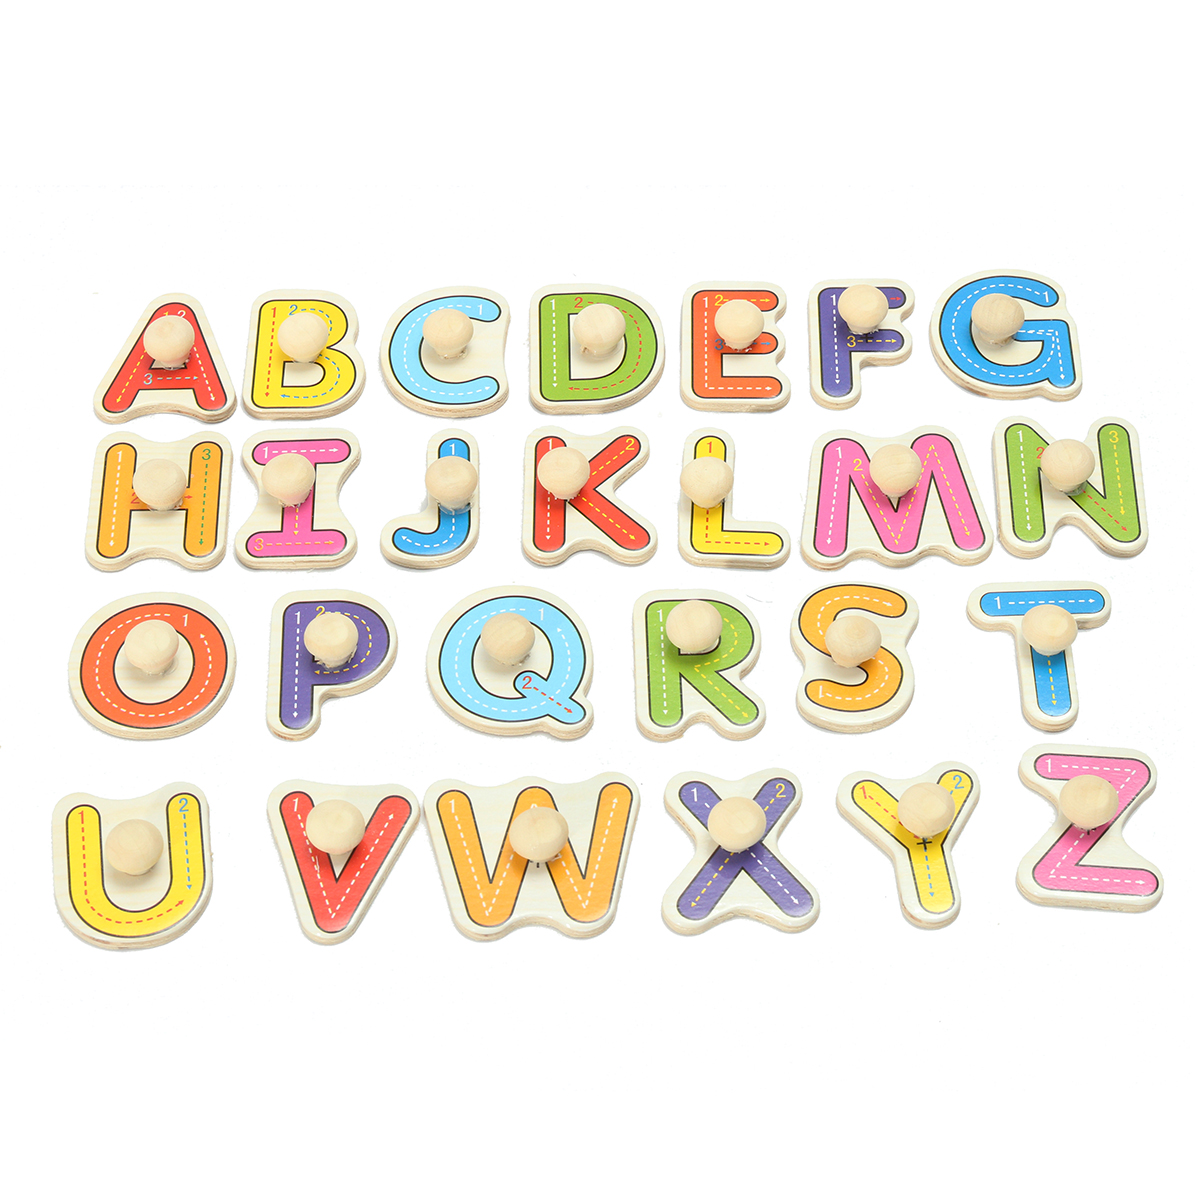 Alphabet Learning Toys : Alphabet abc wooden jigsaw puzzle toy children kids